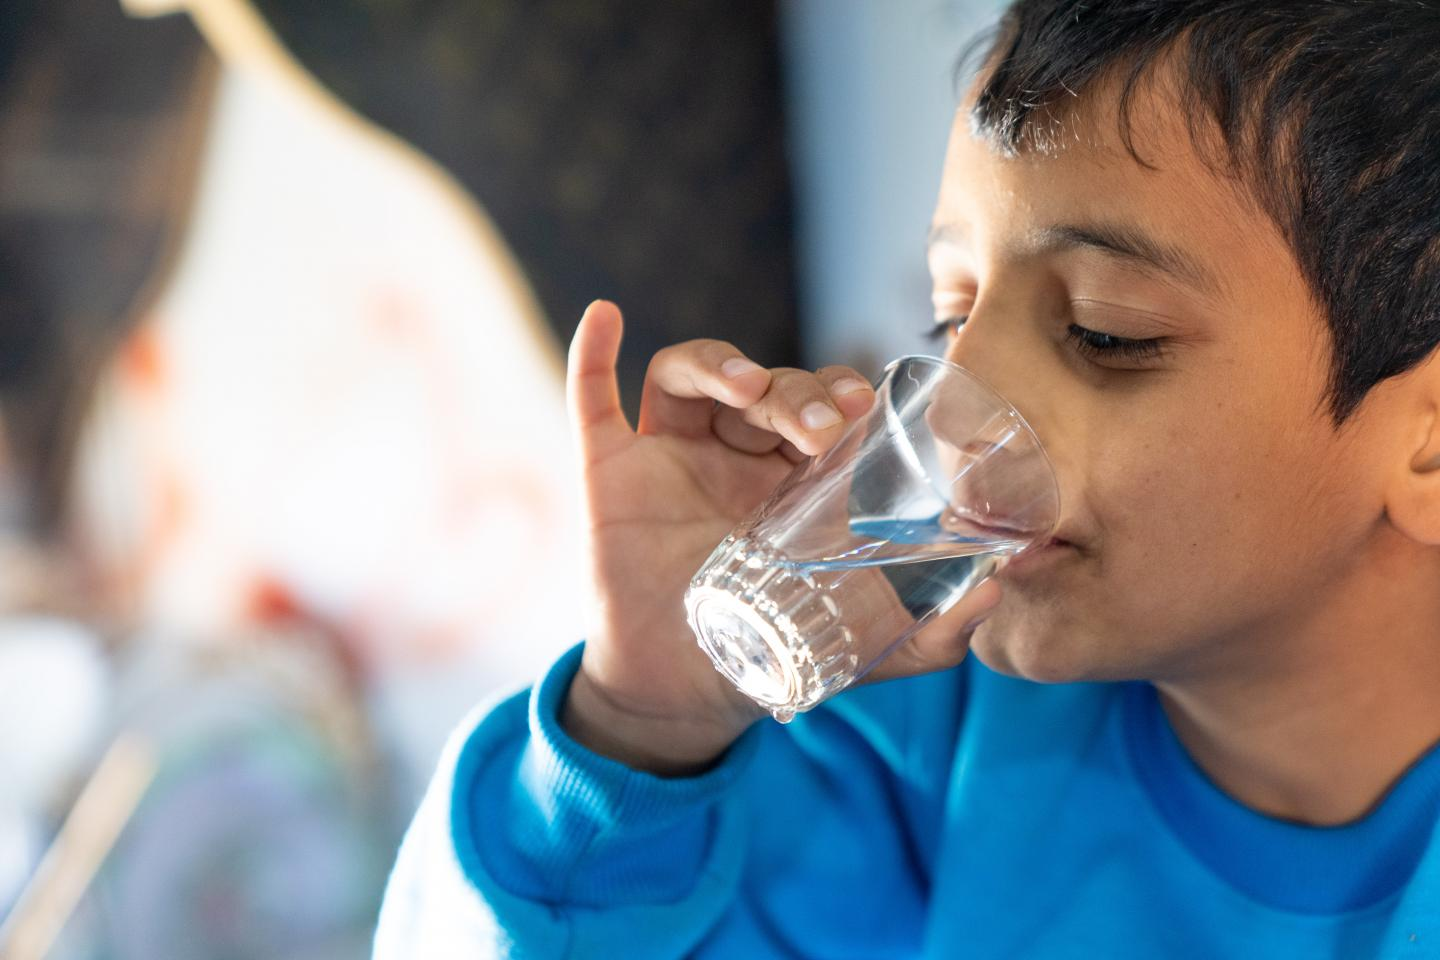 A boy drinks a glass of water